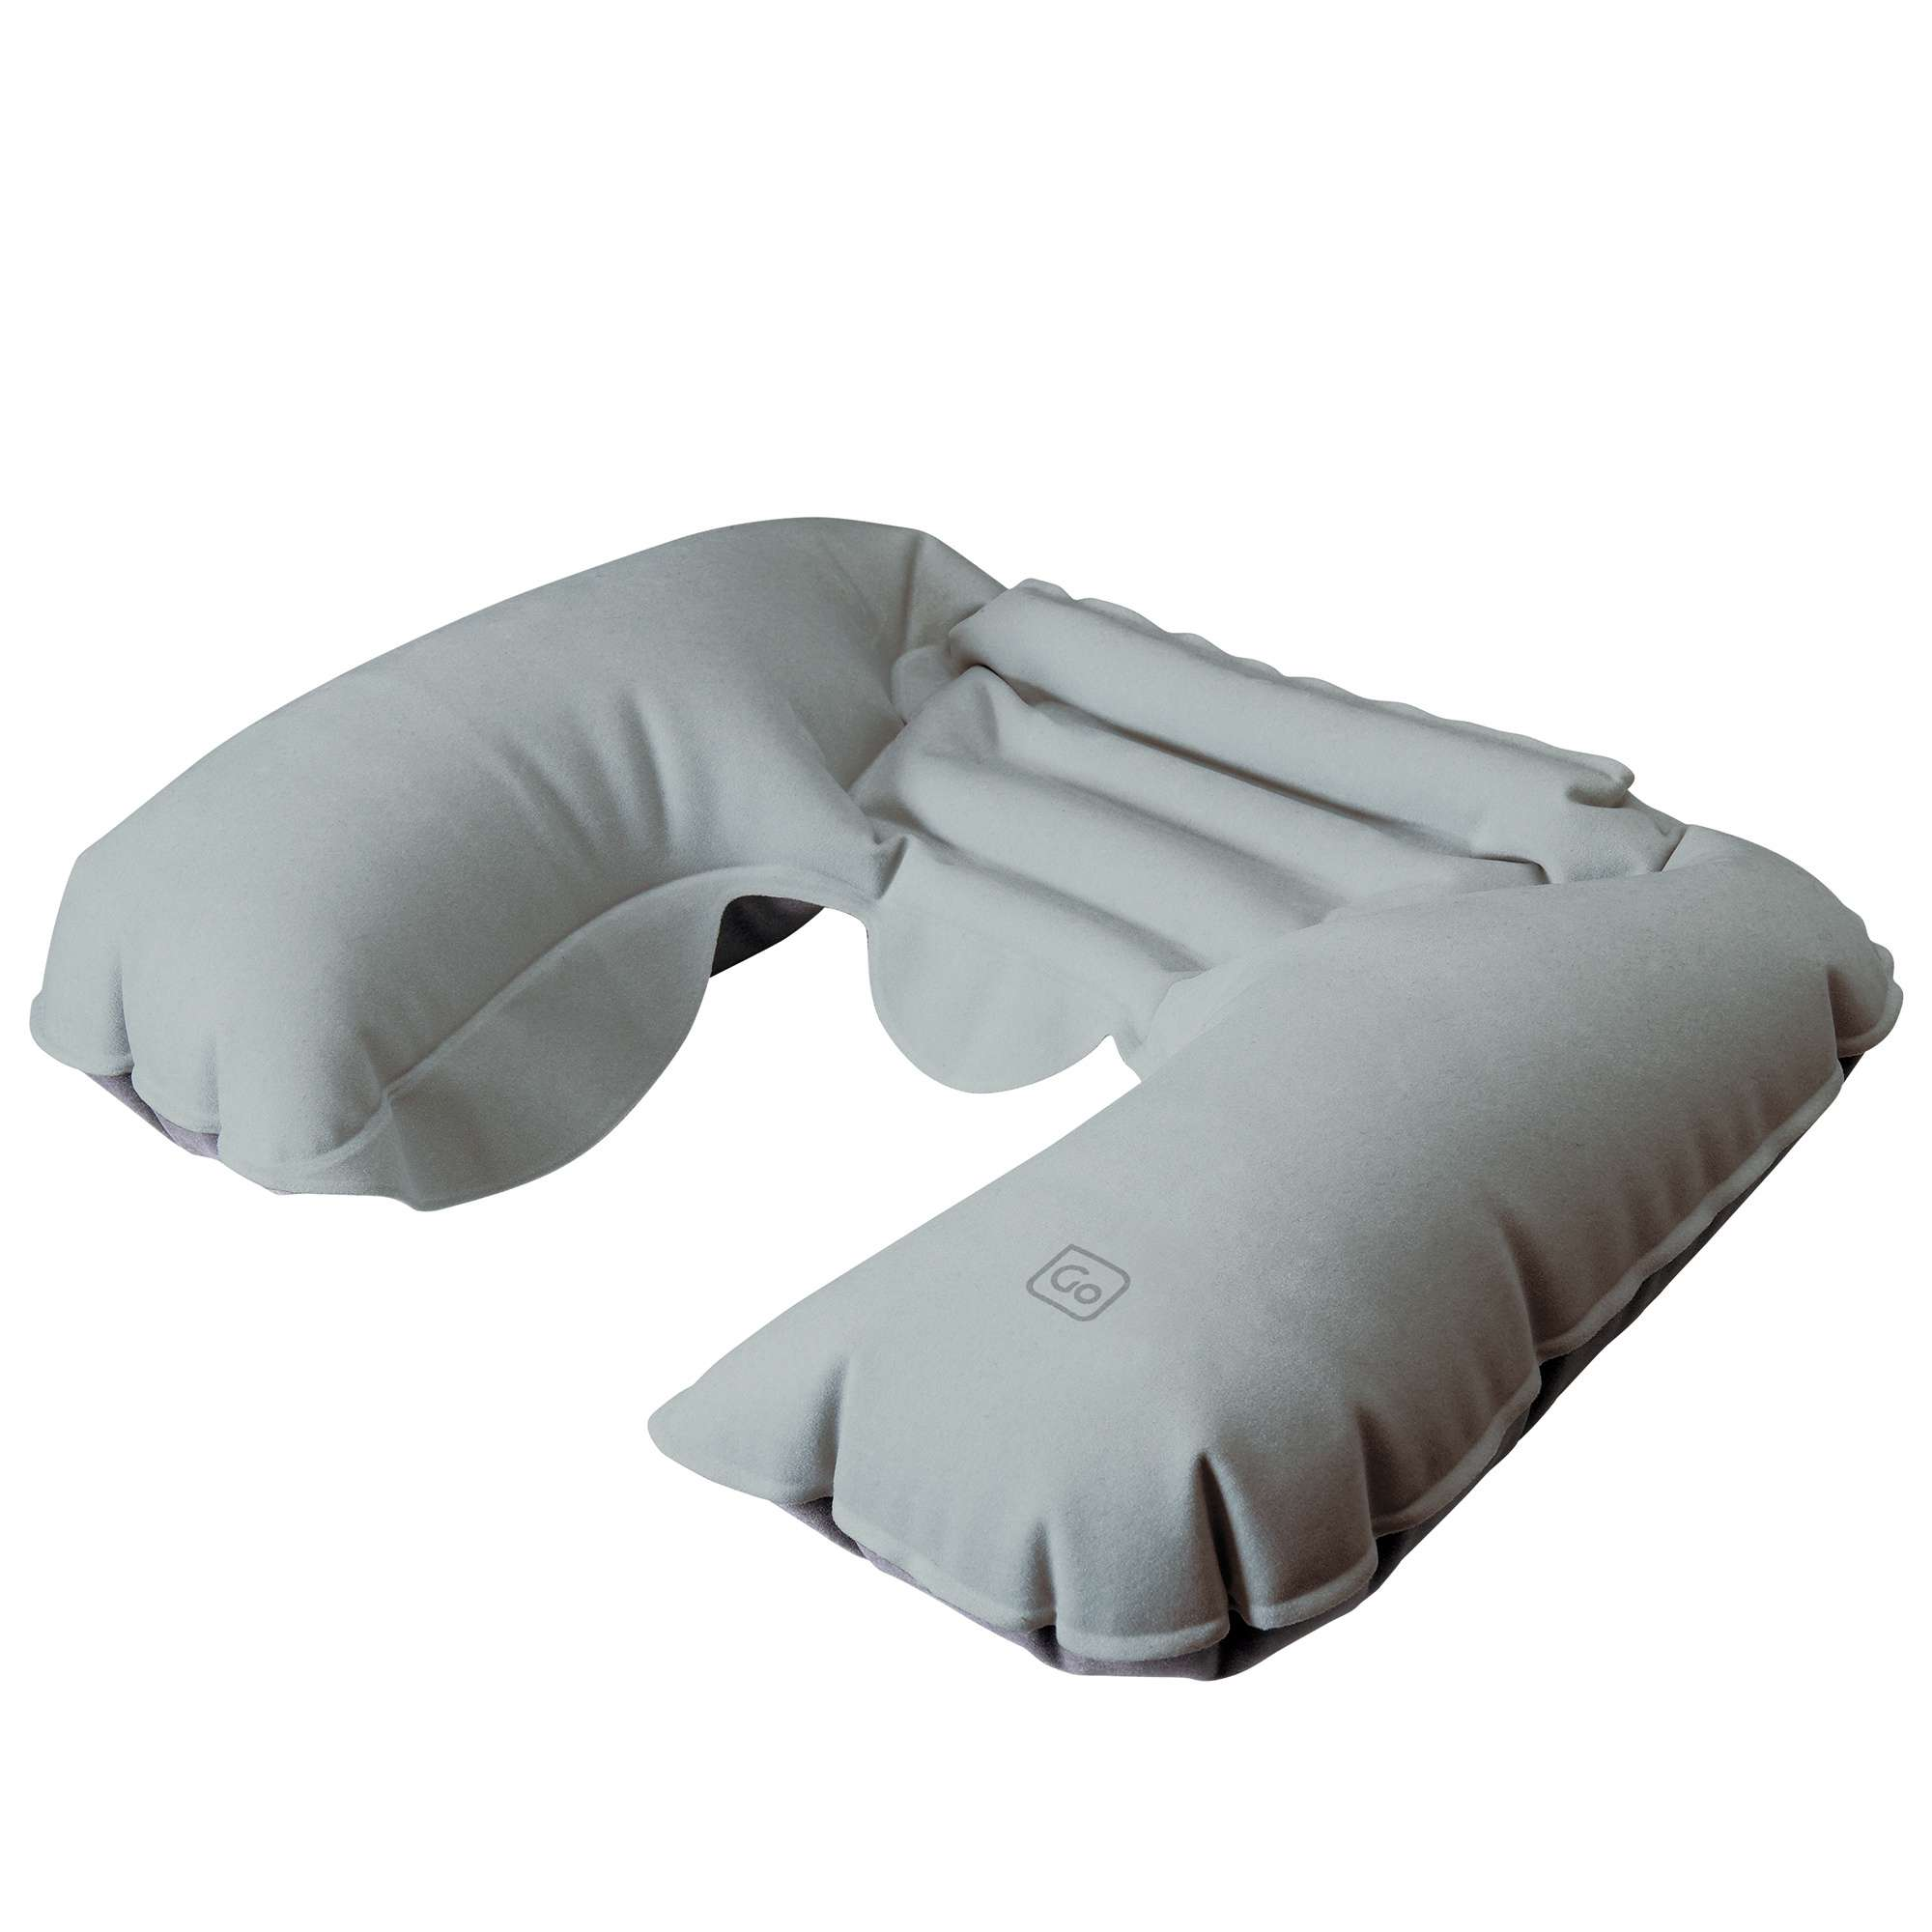 DESIGN GO The Snoozer Travel Pillow